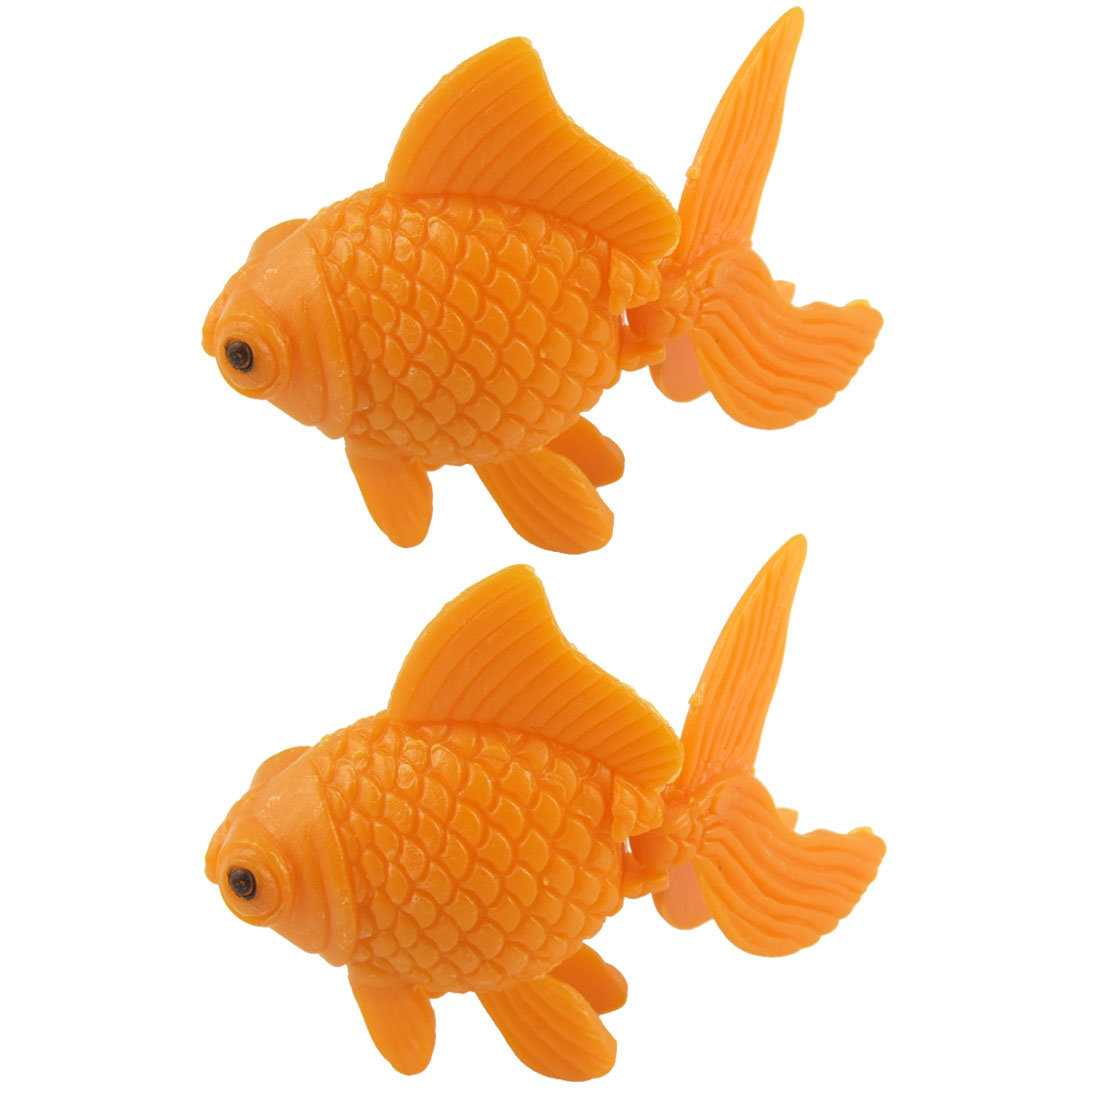 Aquarium Plastic Fish Tank Floating Goldfish Ornament Decor Orange 2 Pcs